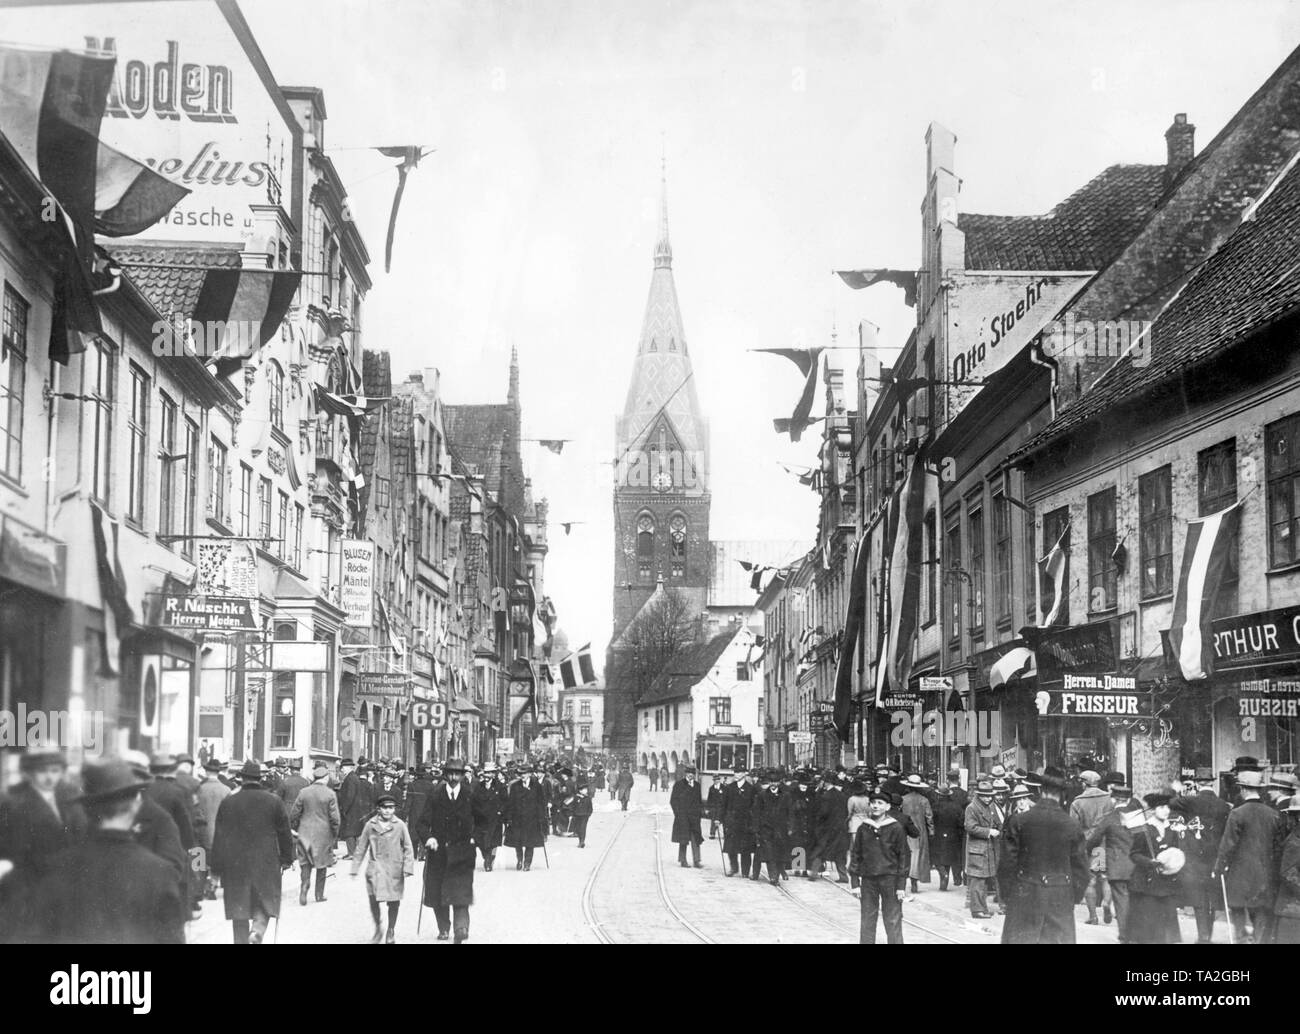 During the vote on remaining in the German Reich, the Grosse Strasse in Flensburg is full of people .The Schleswiger should vote for a stay, the black-white-red flag decoration on the buildings shows the loyalty of the Flensburg people to Germany.Only in the background on the left side of the road is a Danish flag. - Stock Image